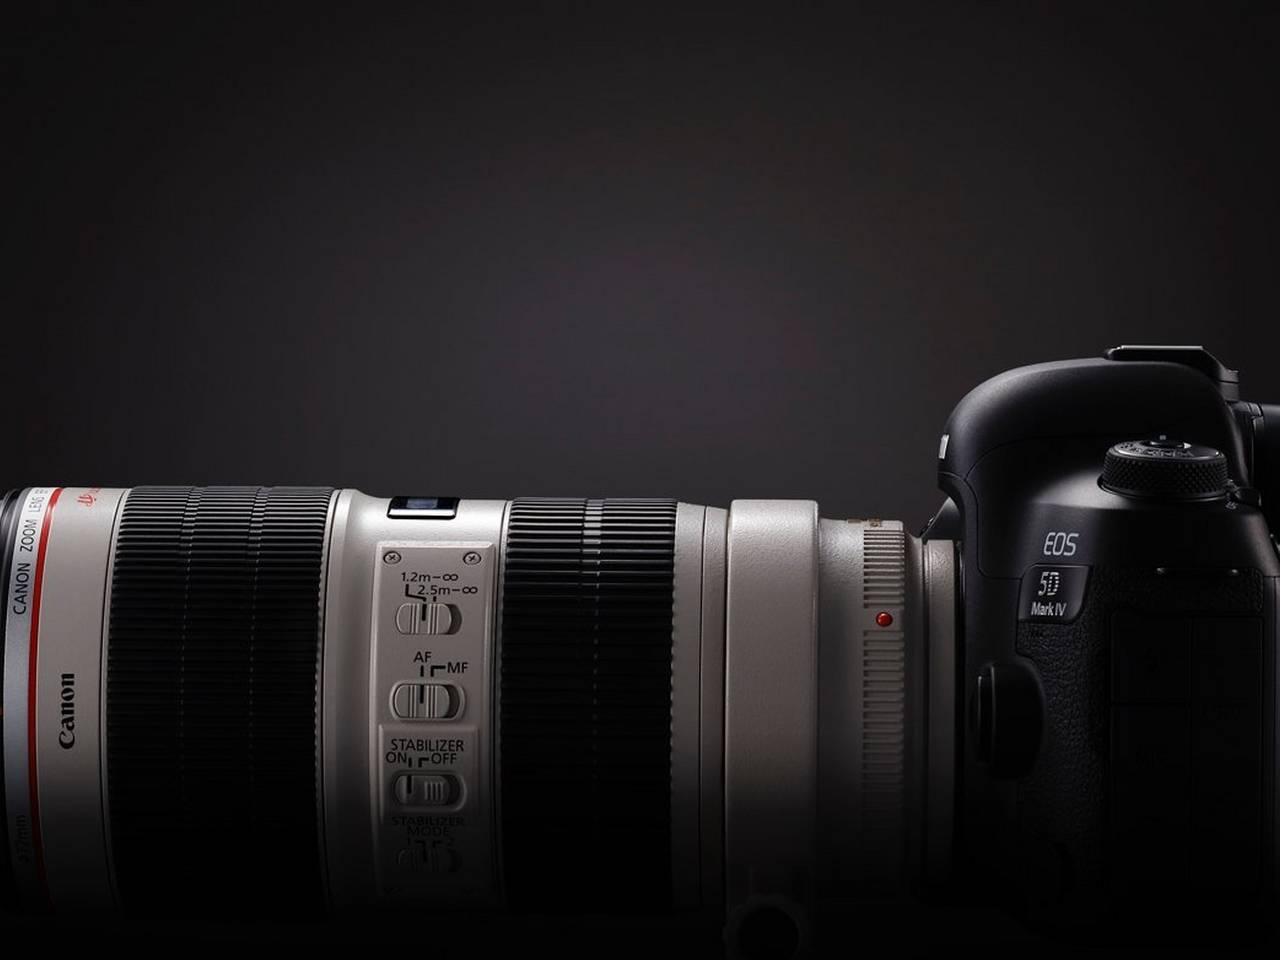 EOS 5D Mark IV side view with EF70-200mm f/2.8L IS II USM zoom